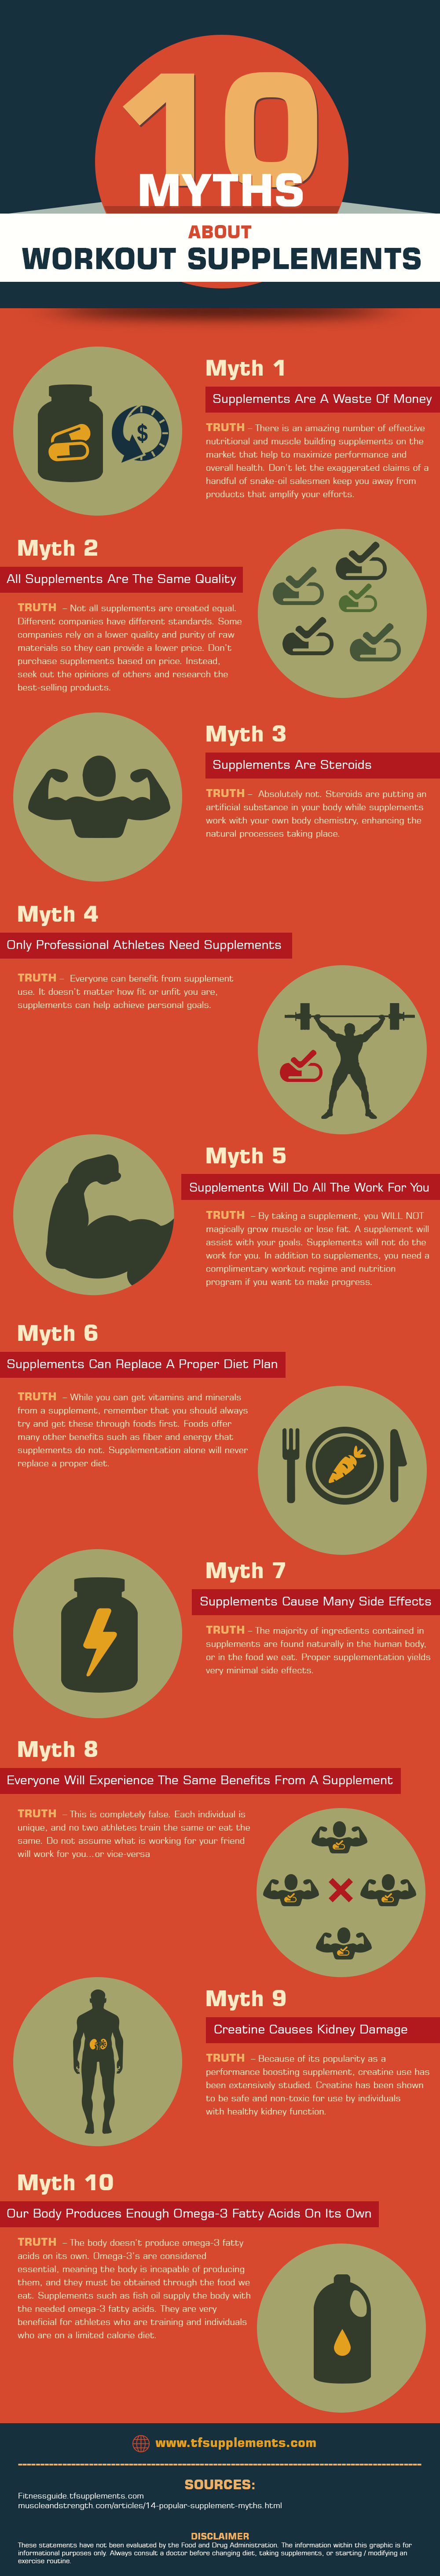 workout supplements Myths